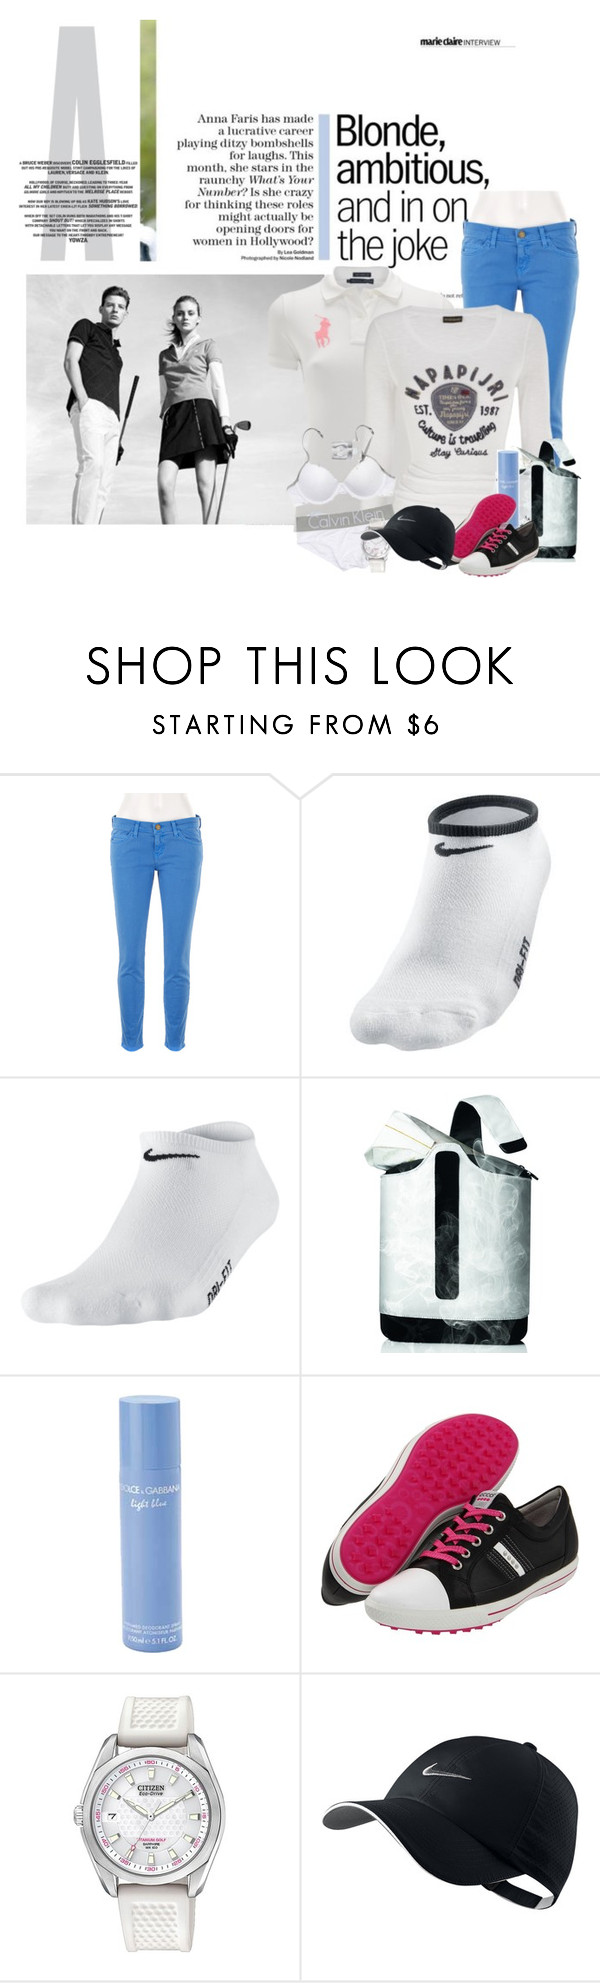 """""""Let's golf!"""" by lady-ju ❤ liked on Polyvore featuring Current/Elliott, Burberry, Polo Ralph Lauren, Napapijri, Calvin Klein, NIKE, Menu, Dolce&Gabbana, ECCO and Citizen"""